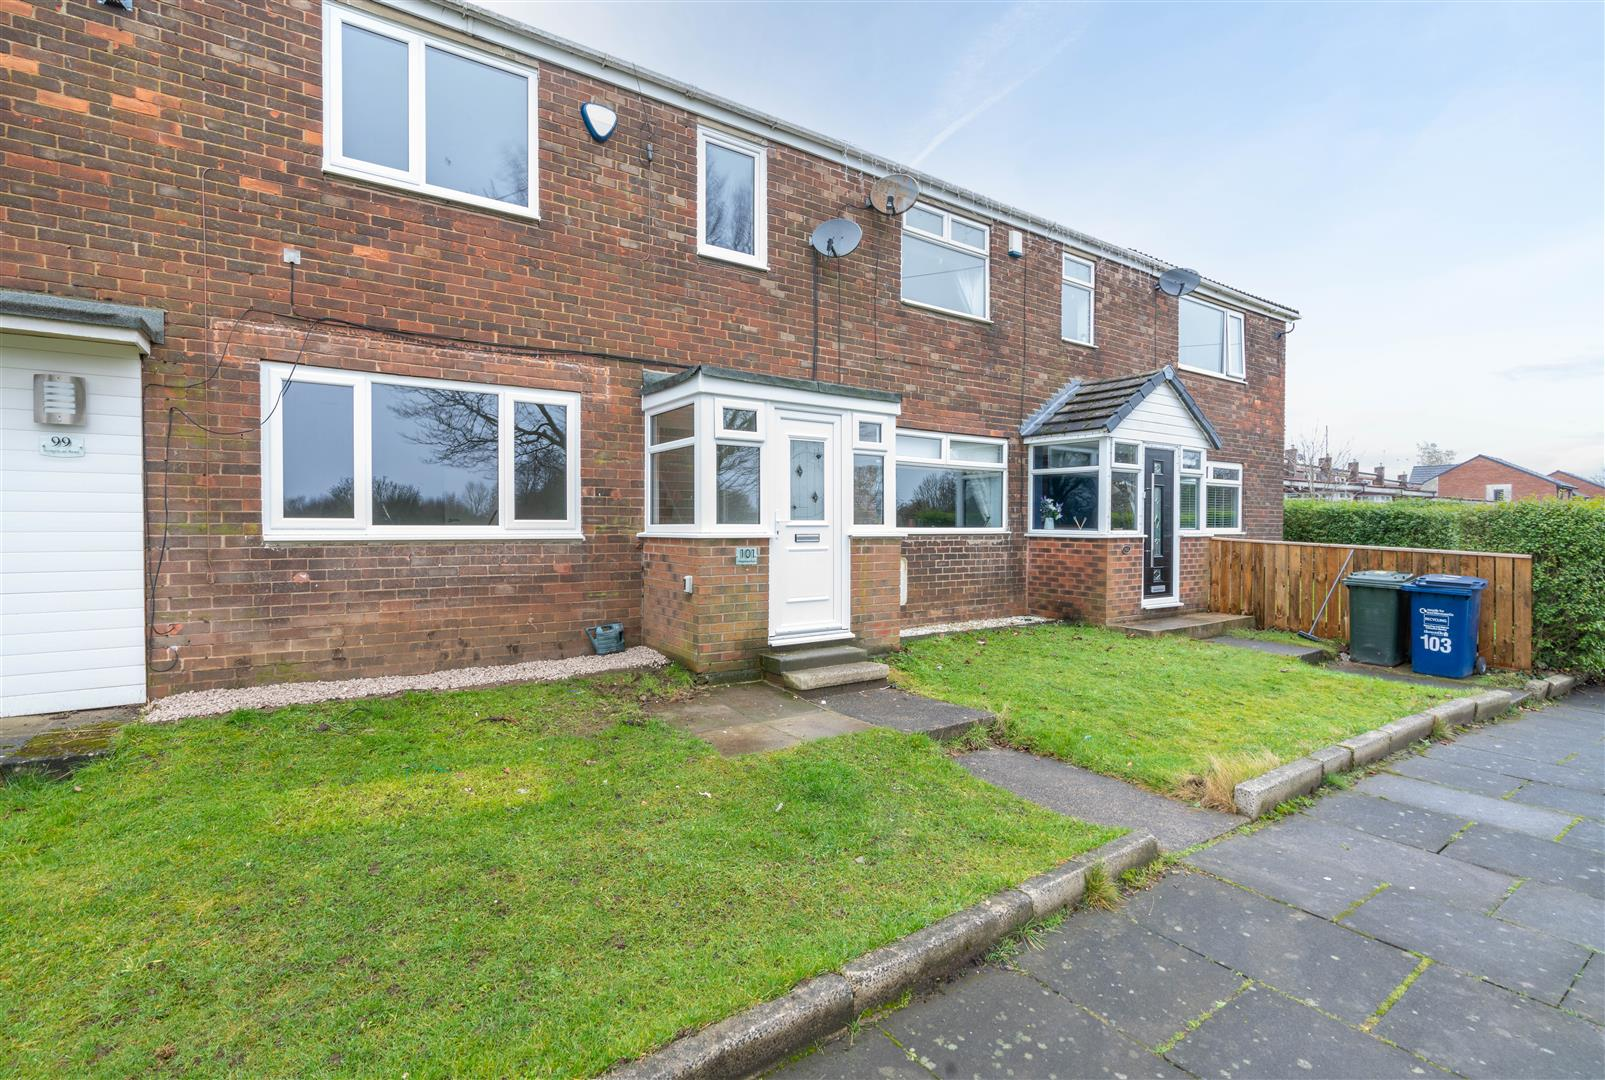 3 bed terraced house for sale in Newcastle Upon Tyne, NE5 4LB, NE5